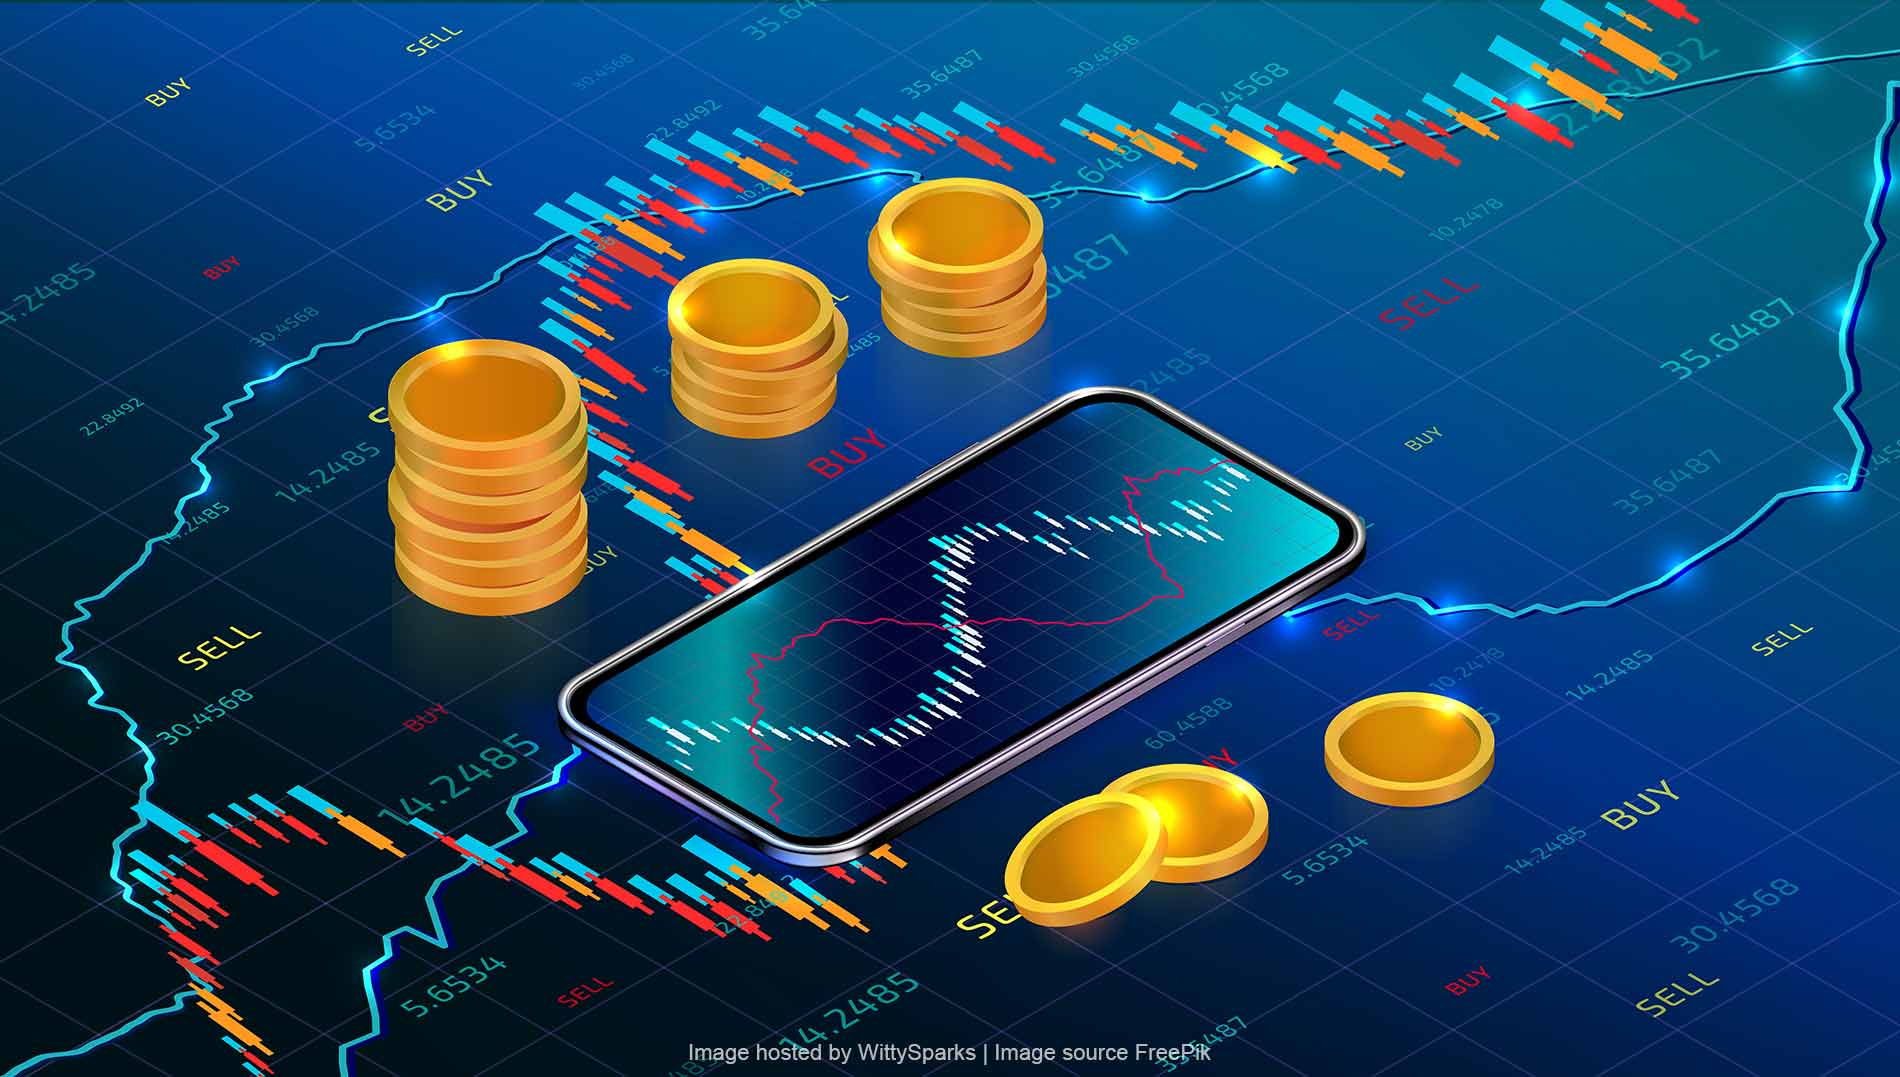 Digital currency or Cryptocurrency in trading